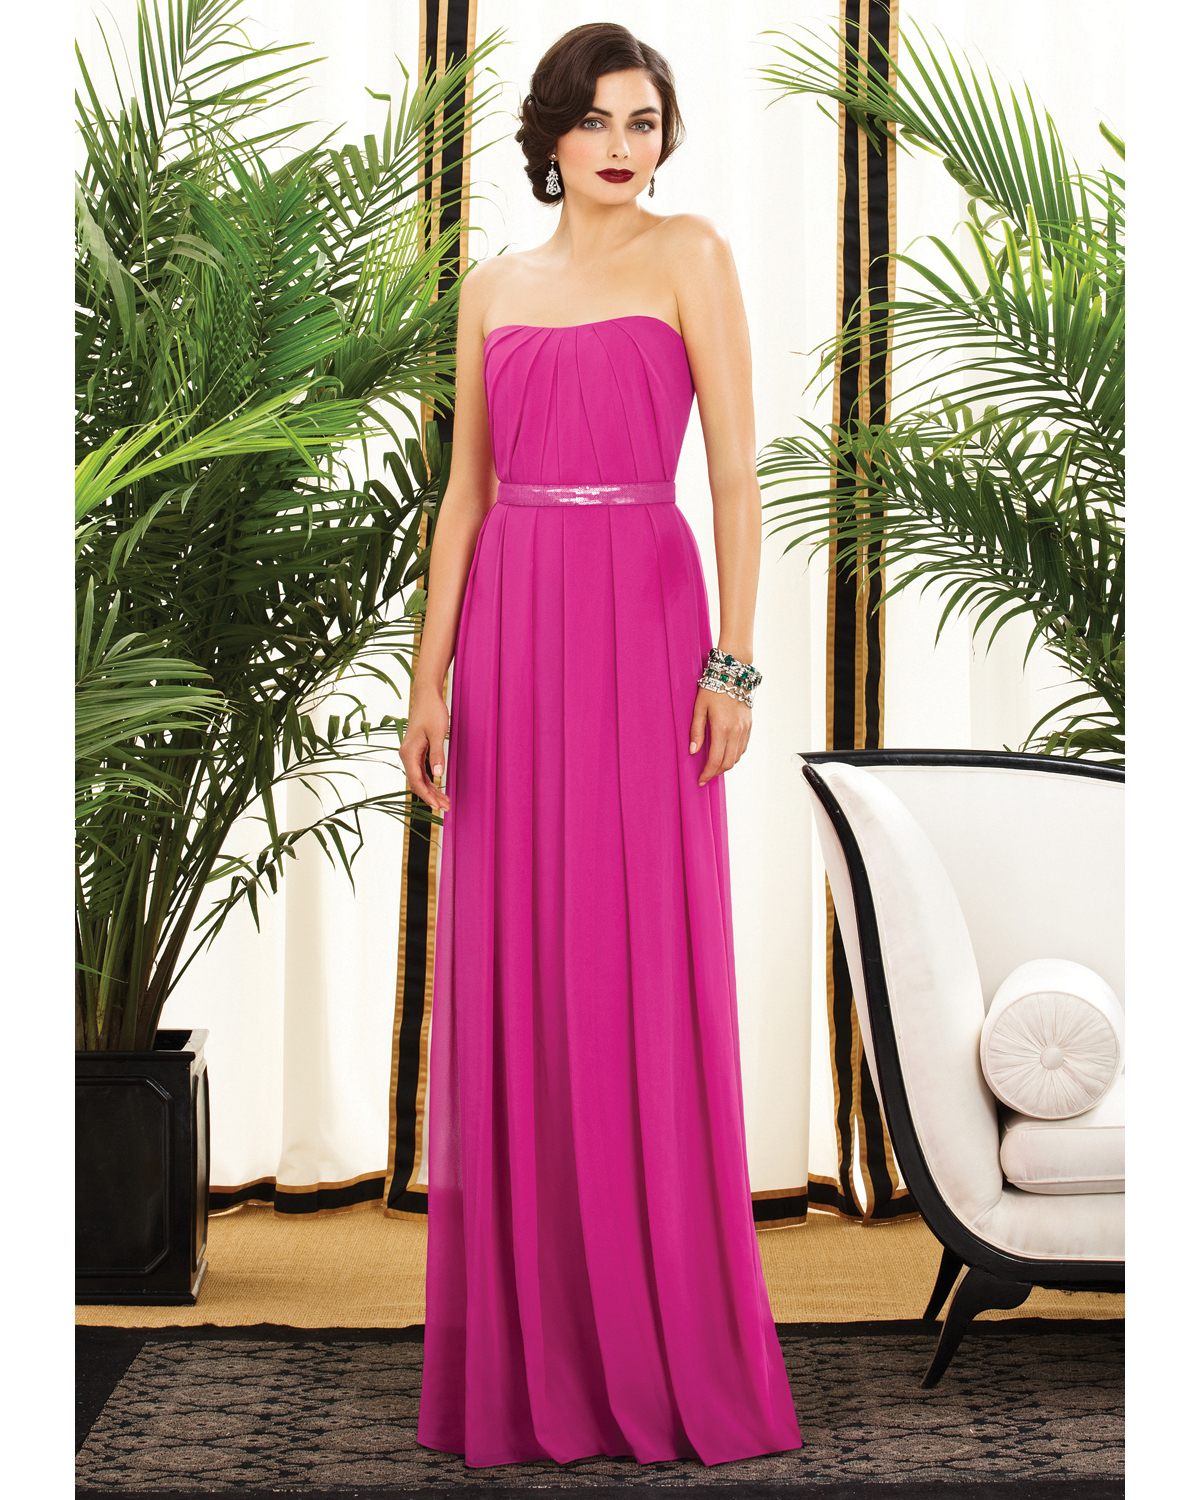 dessy-group-bridal-collection-bridesmaids-dresses-8.jpg